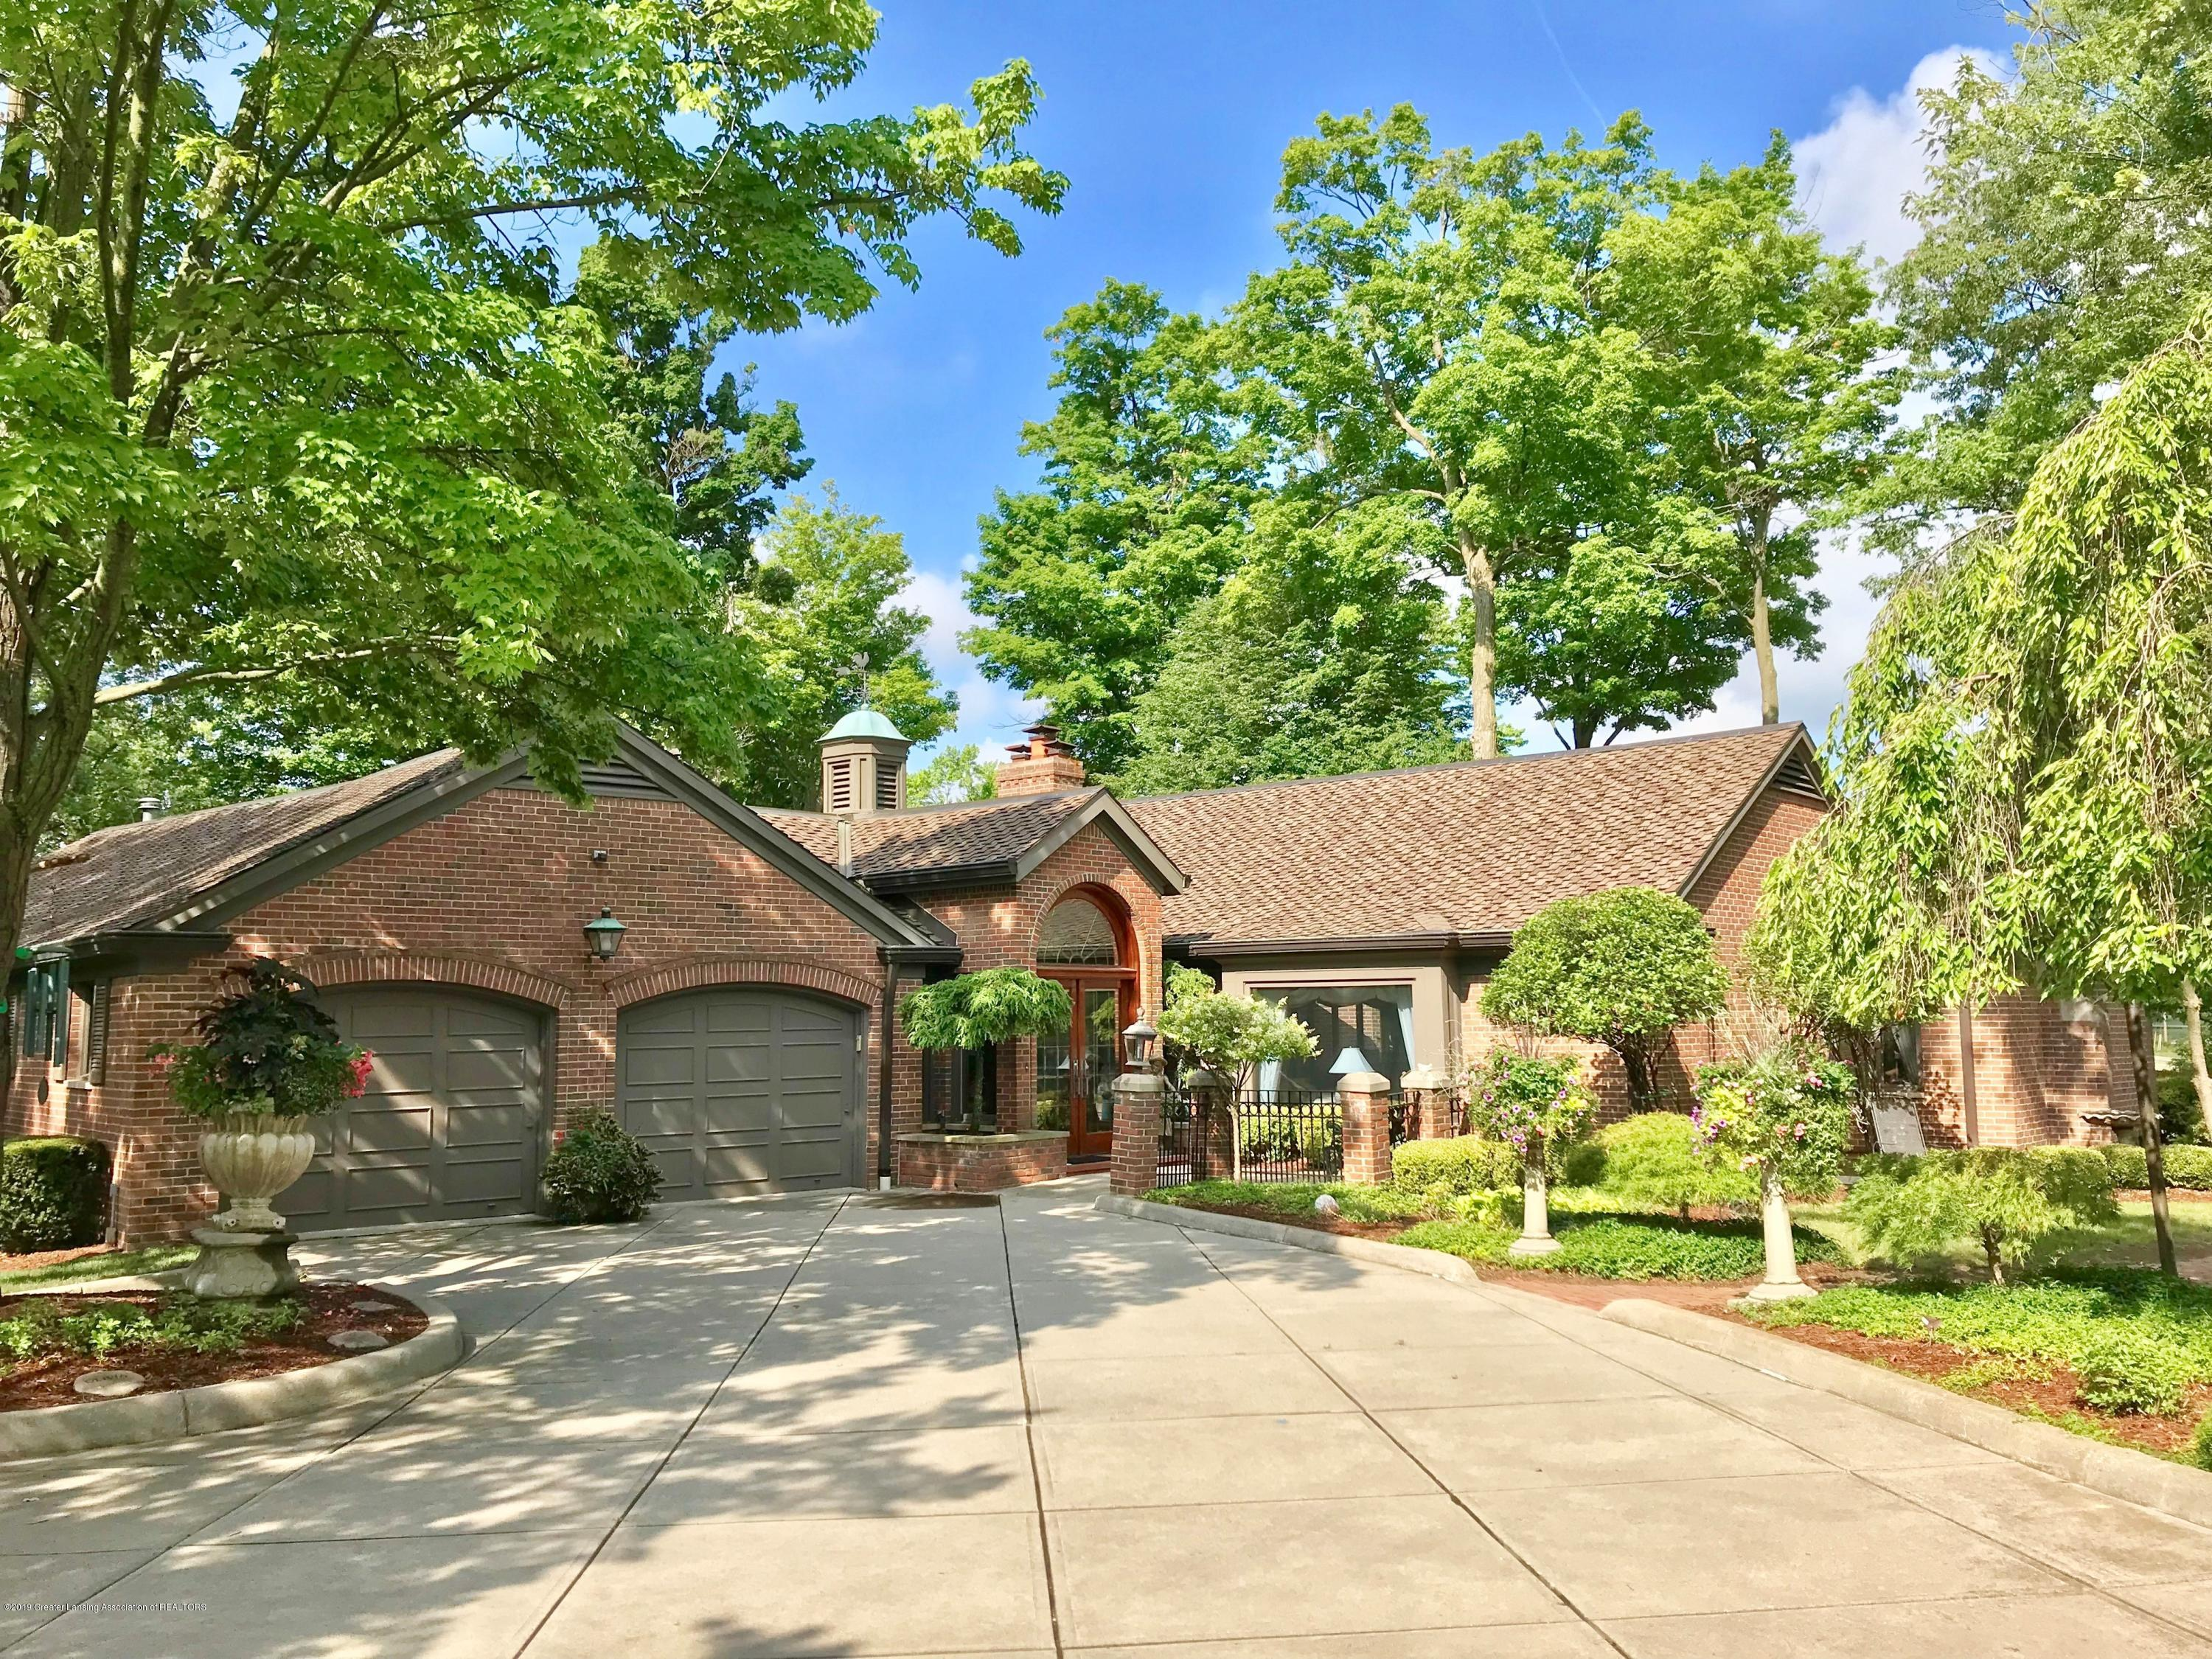 3315 Moores River Dr - Exterior Front - 1